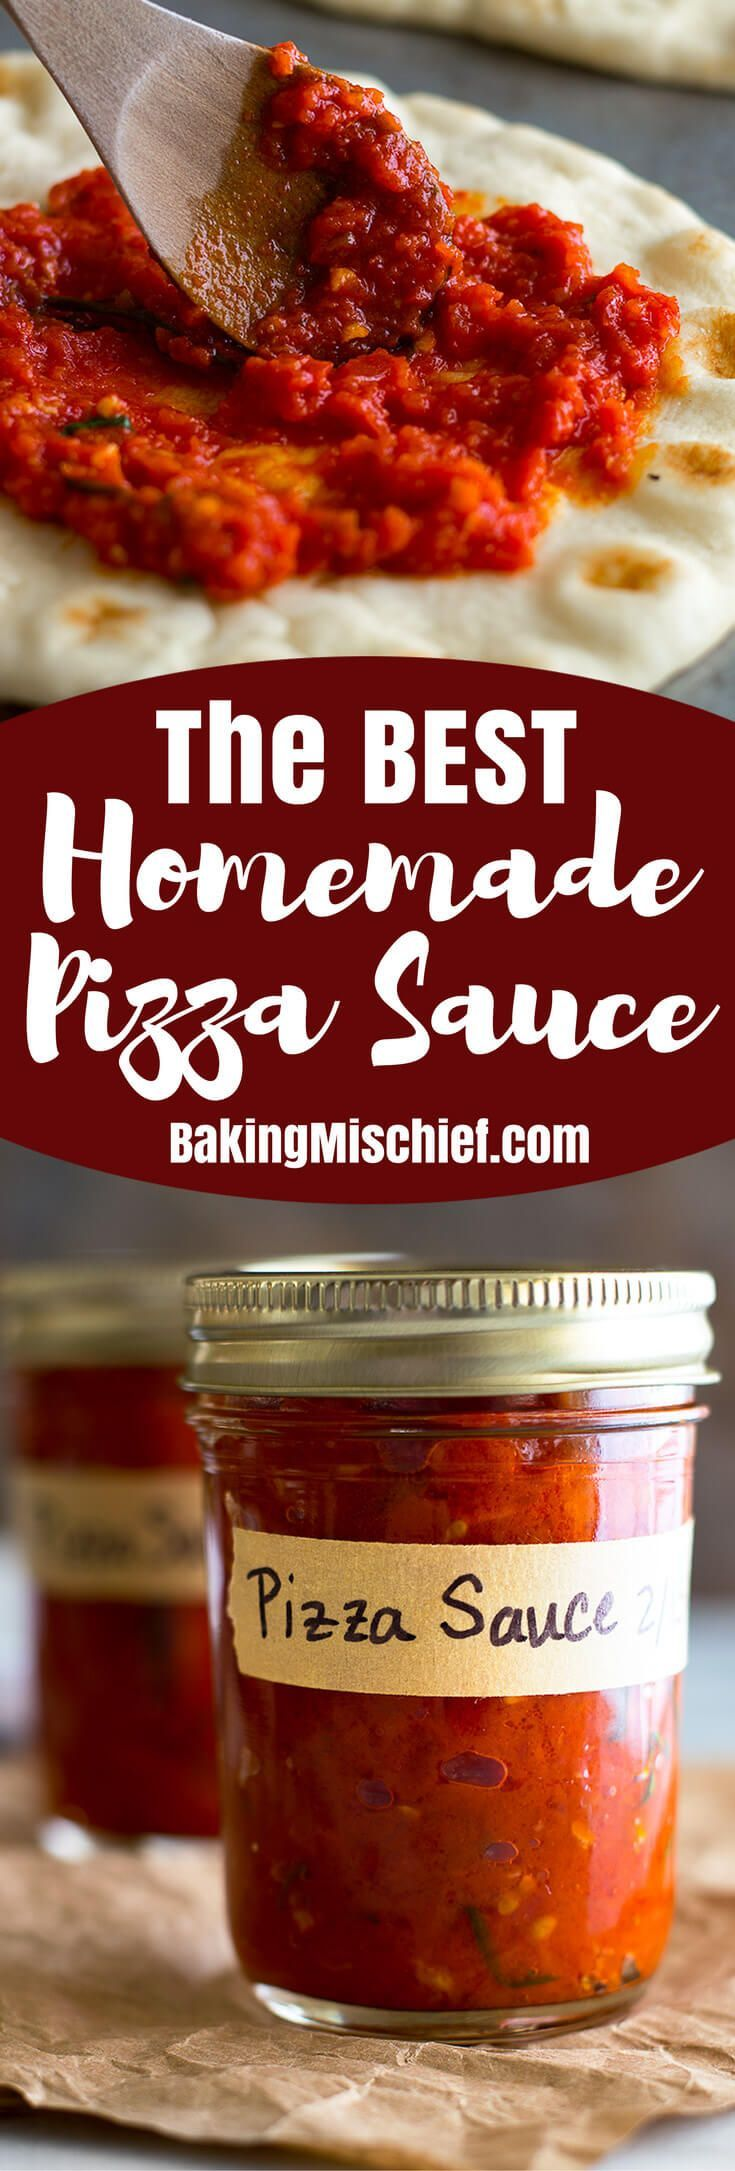 The best homemade pizza sauce! So easy to make and freezer friendly for a quick and easy dinner. From http://BakingMischief.com